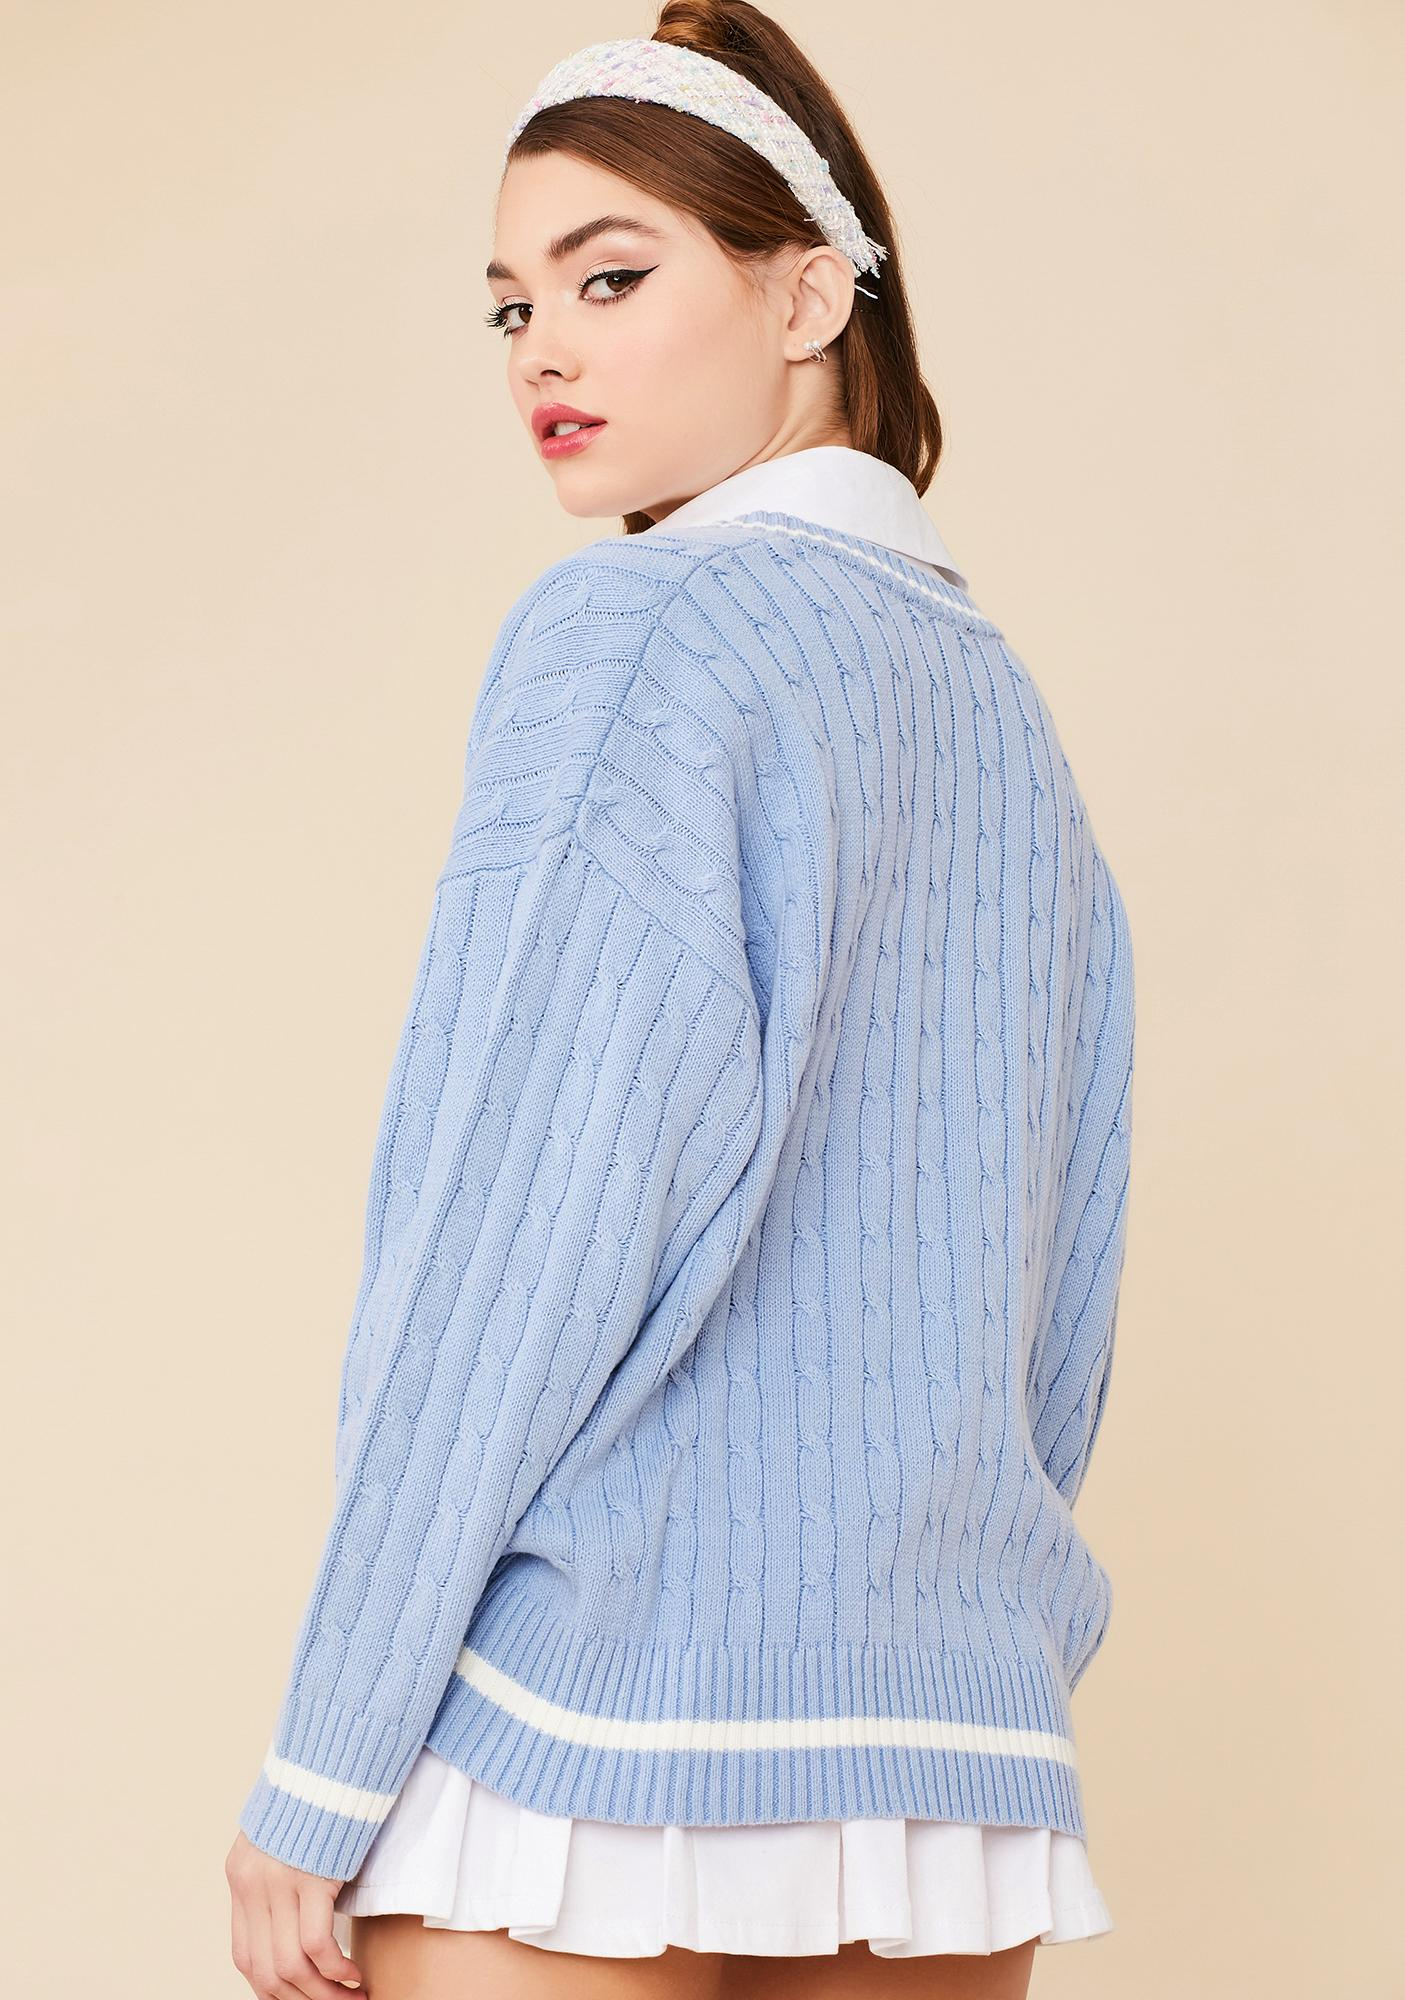 Sky Catch Me On Campus Knit Sweater